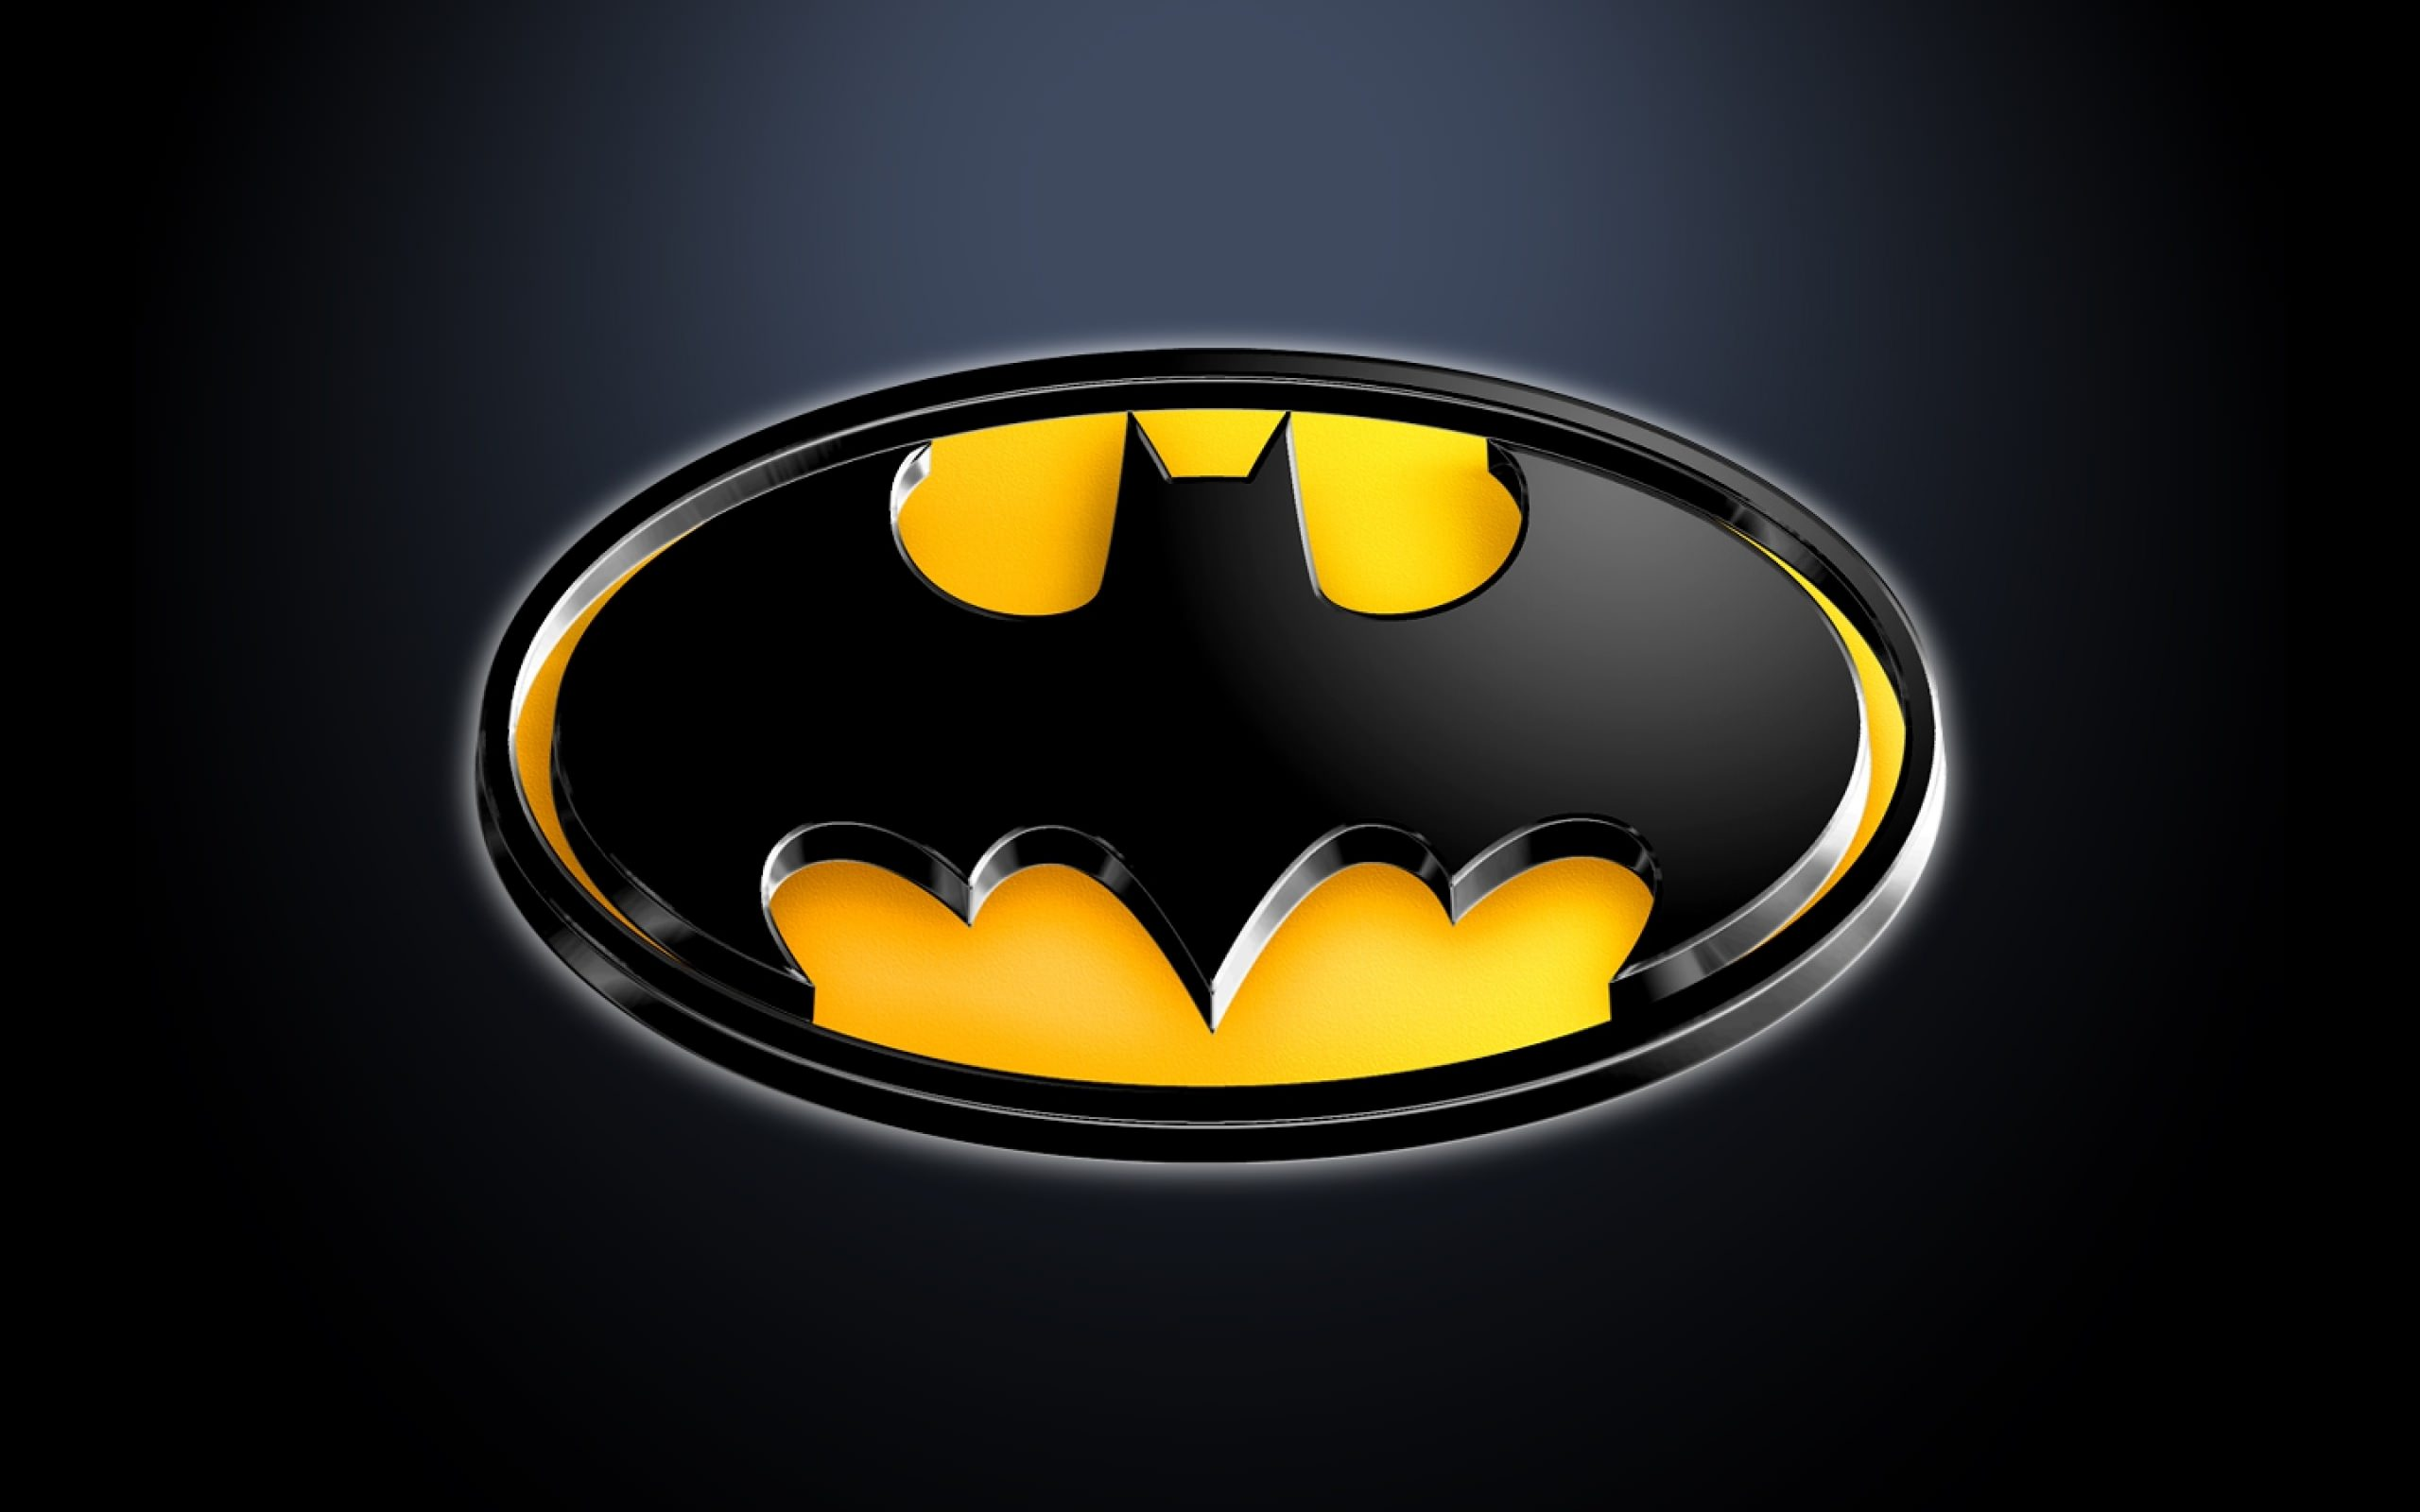 From The Batman Symbol Dark Knight Rises